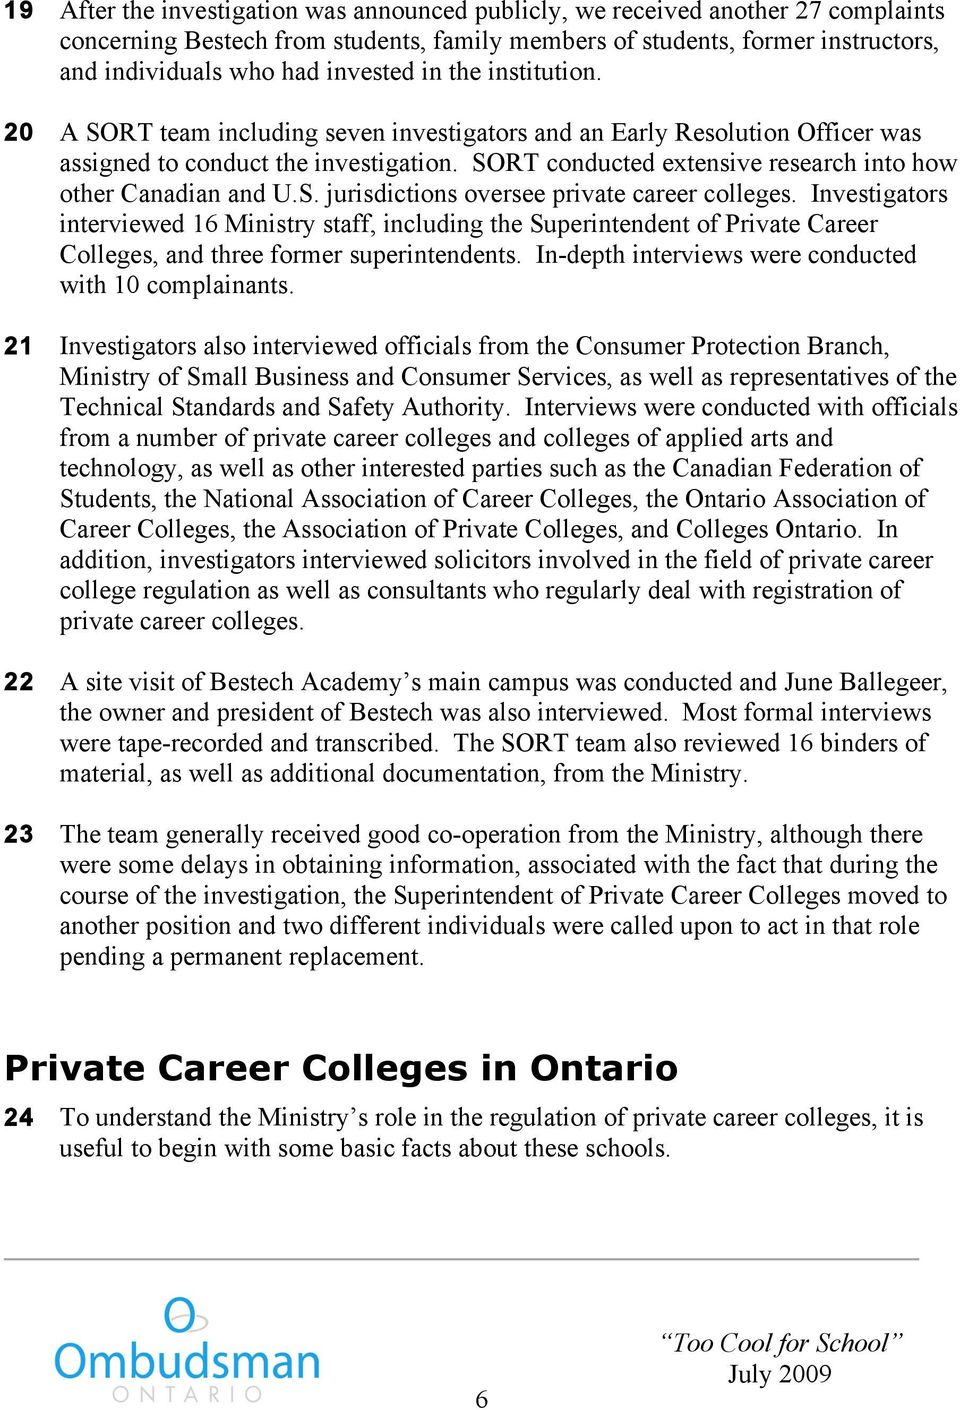 SORT conducted extensive research into how other Canadian and U.S. jurisdictions oversee private career colleges.